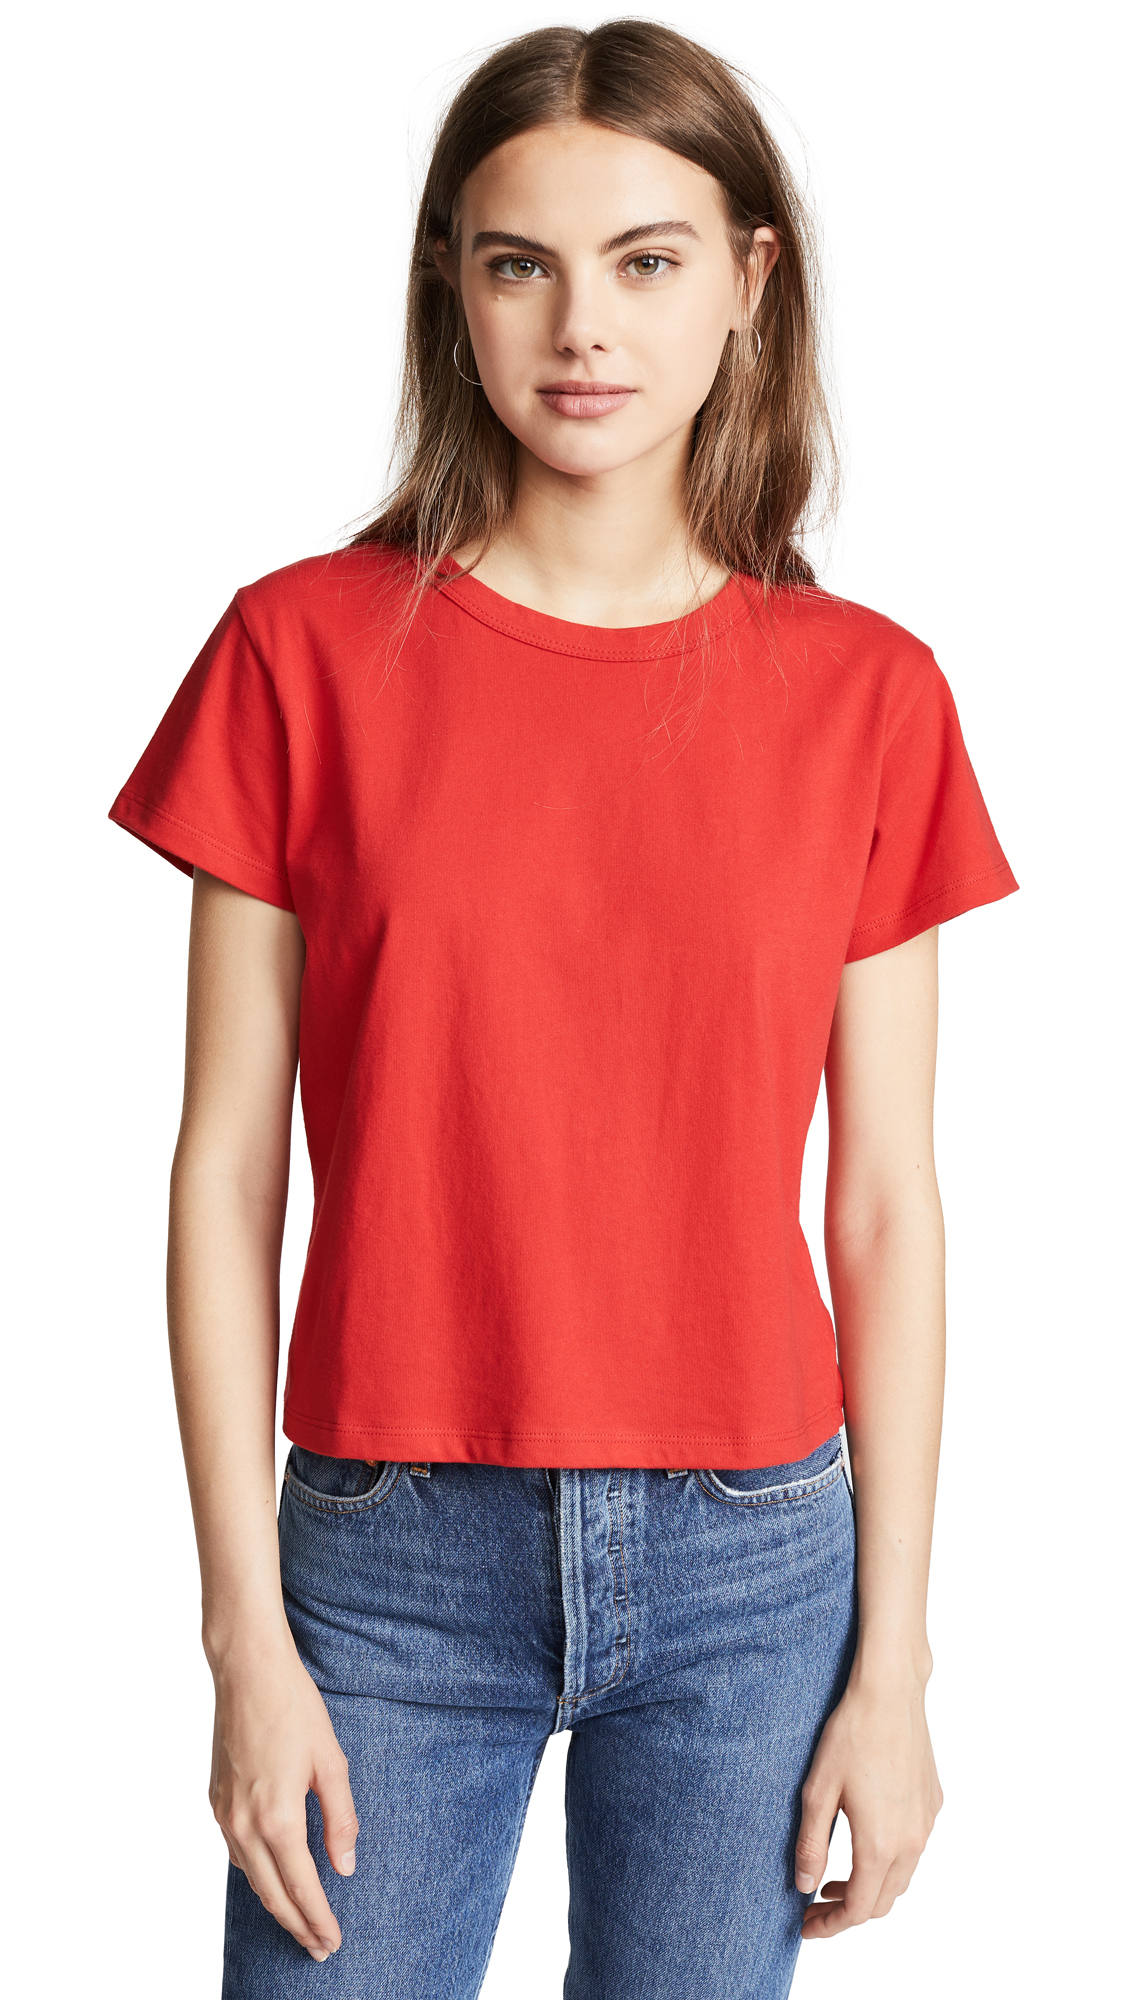 LIANA CLOTHING The Margo Standard Tee in Red